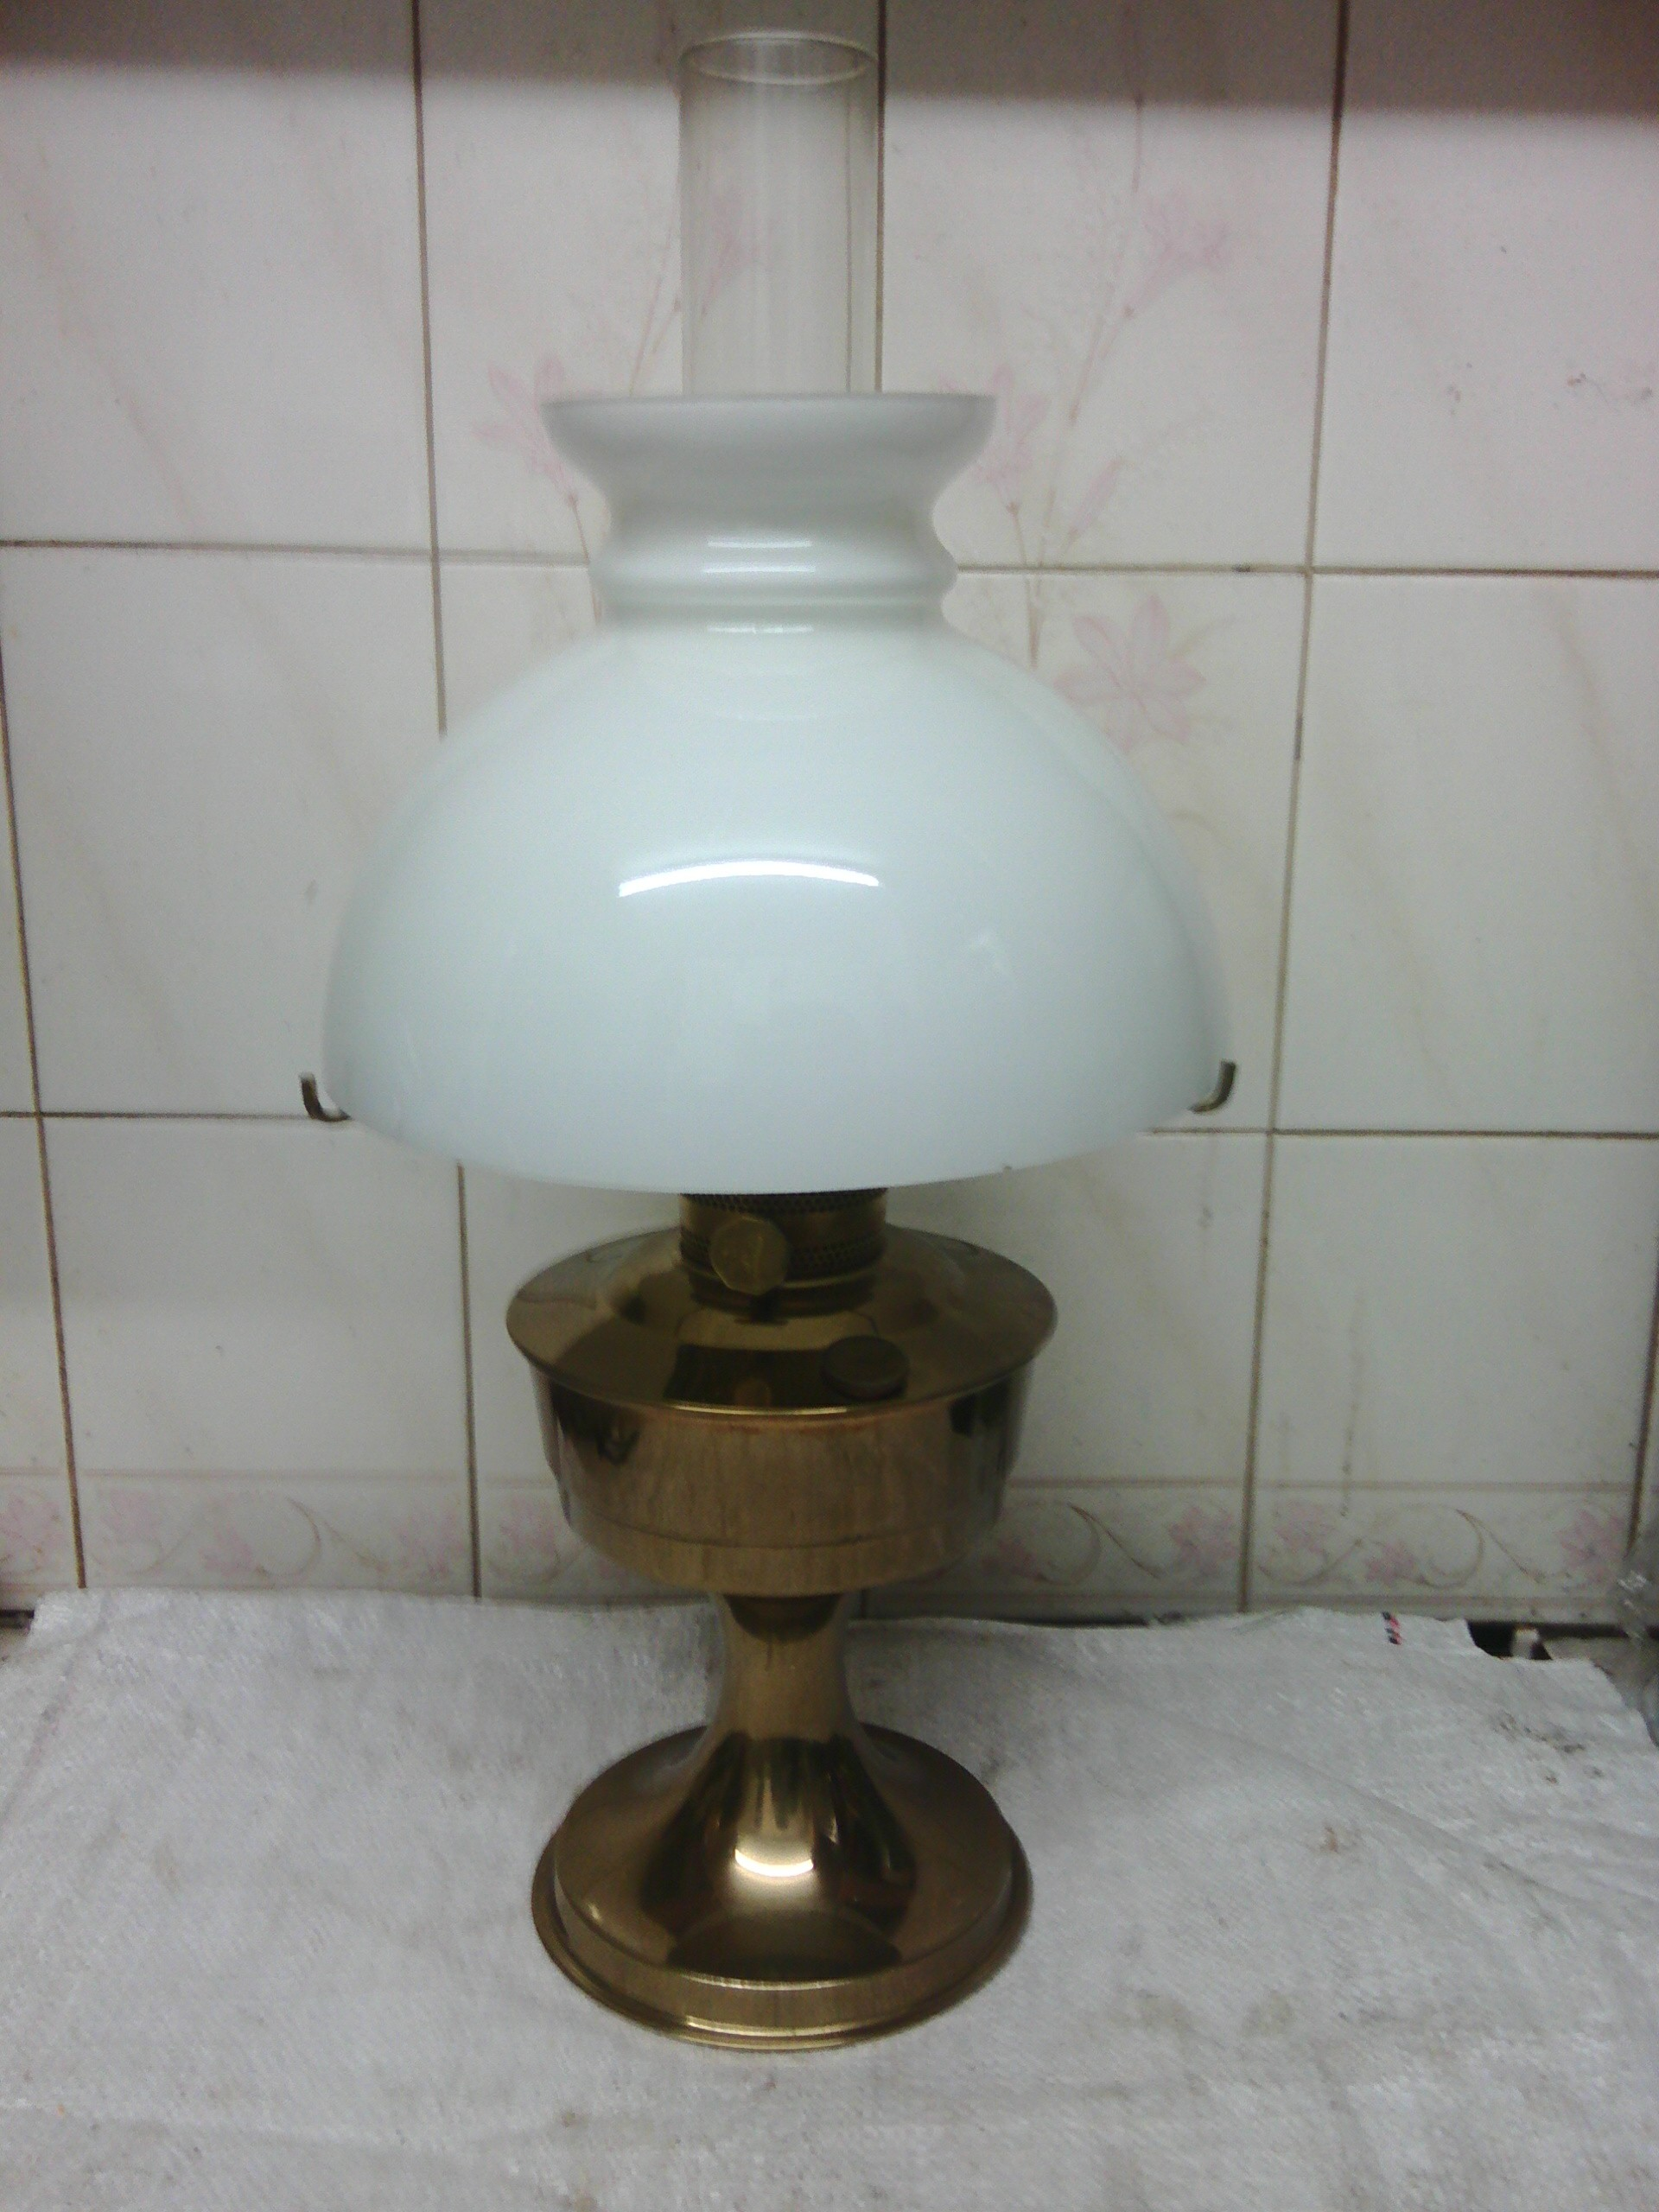 aladdin 23 oil lamp products for sale